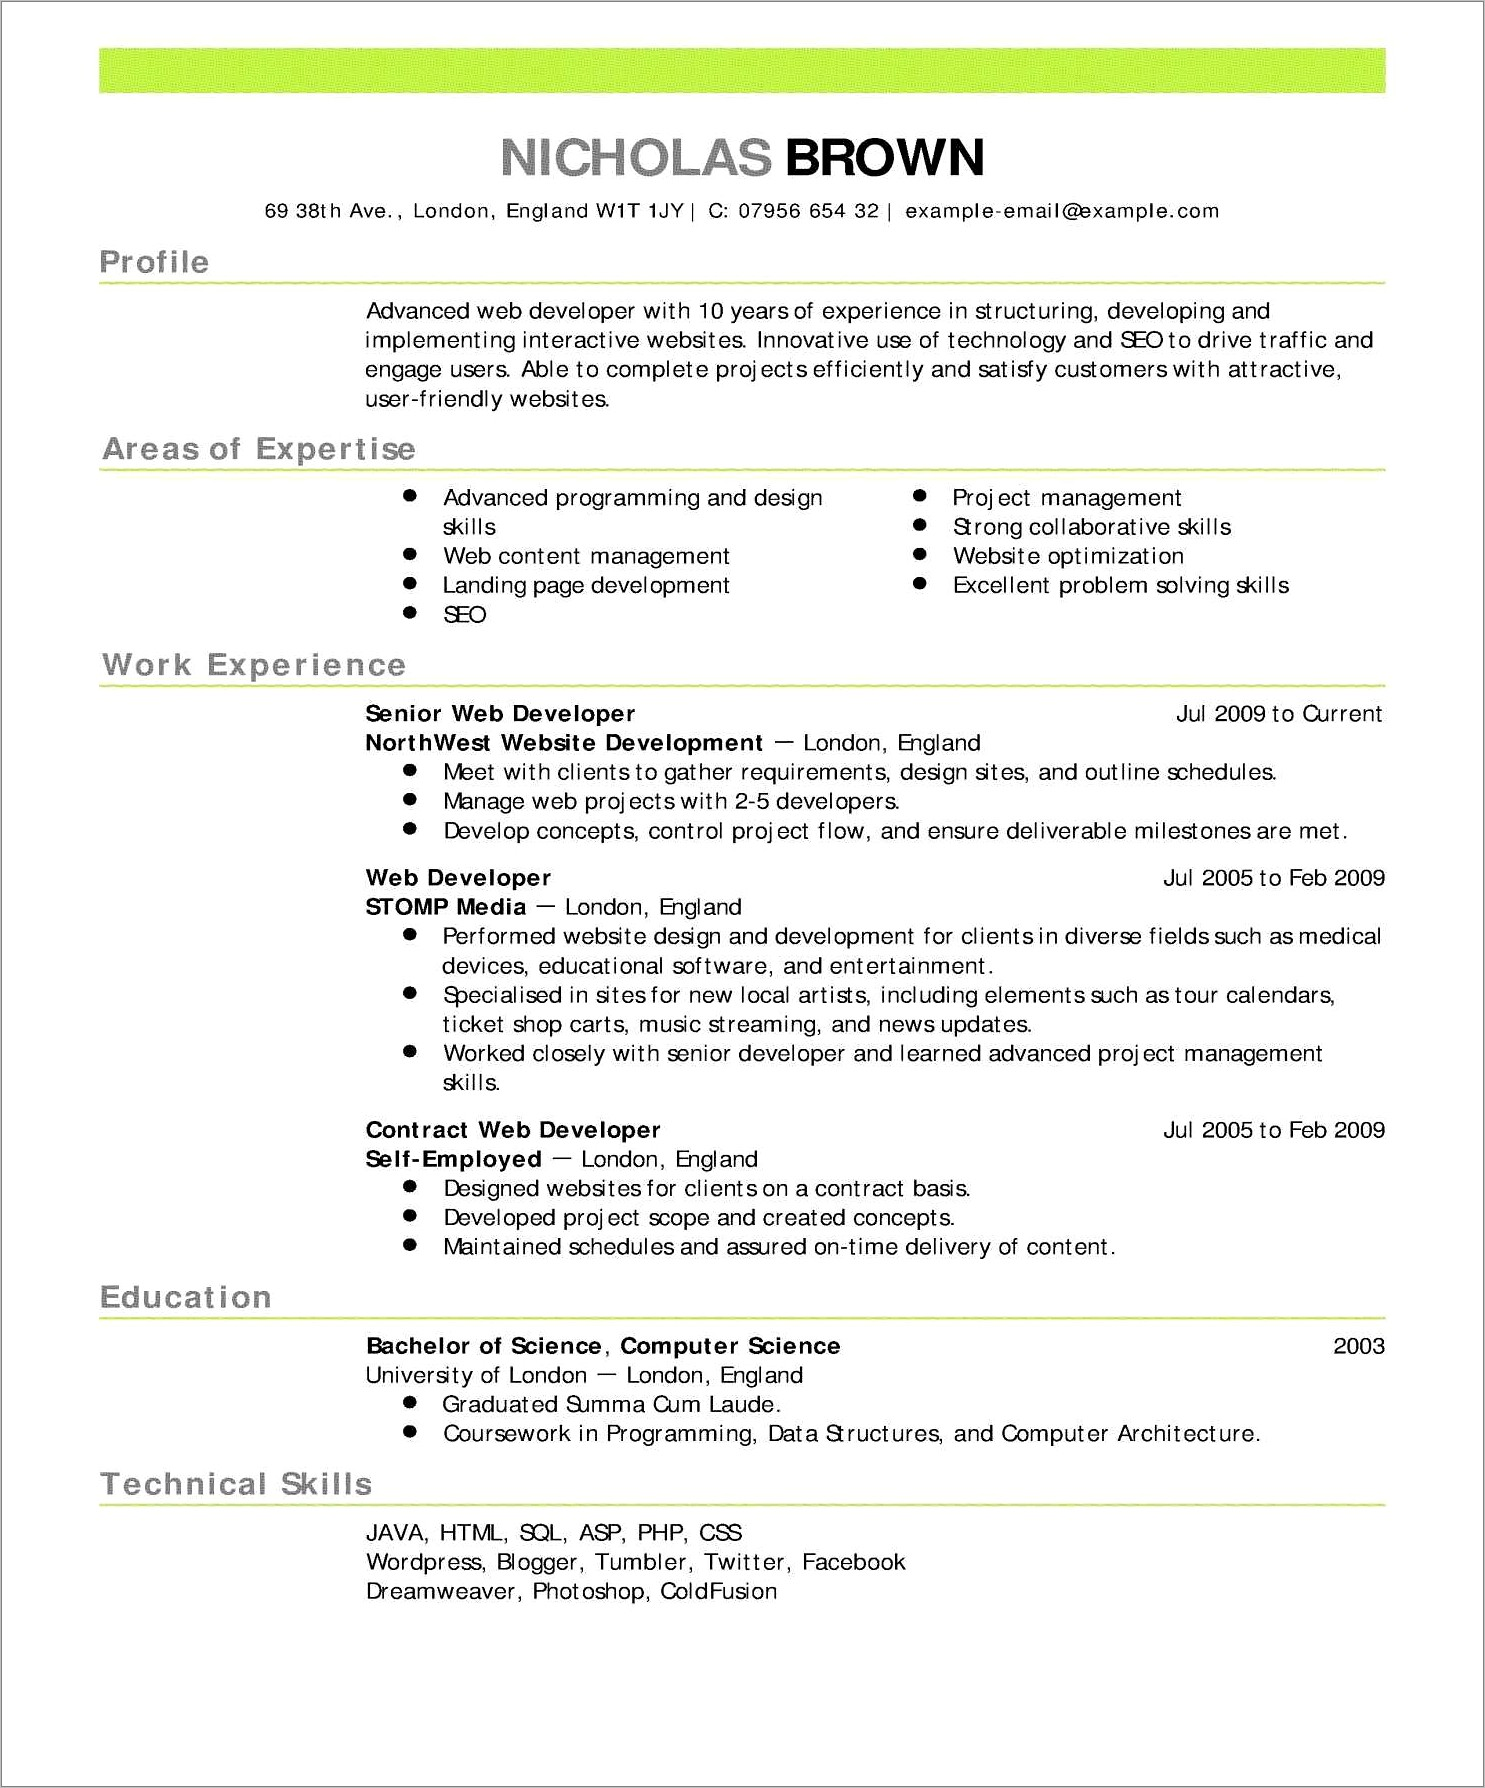 Letter Of Resignation Template 4 Weeks Notice